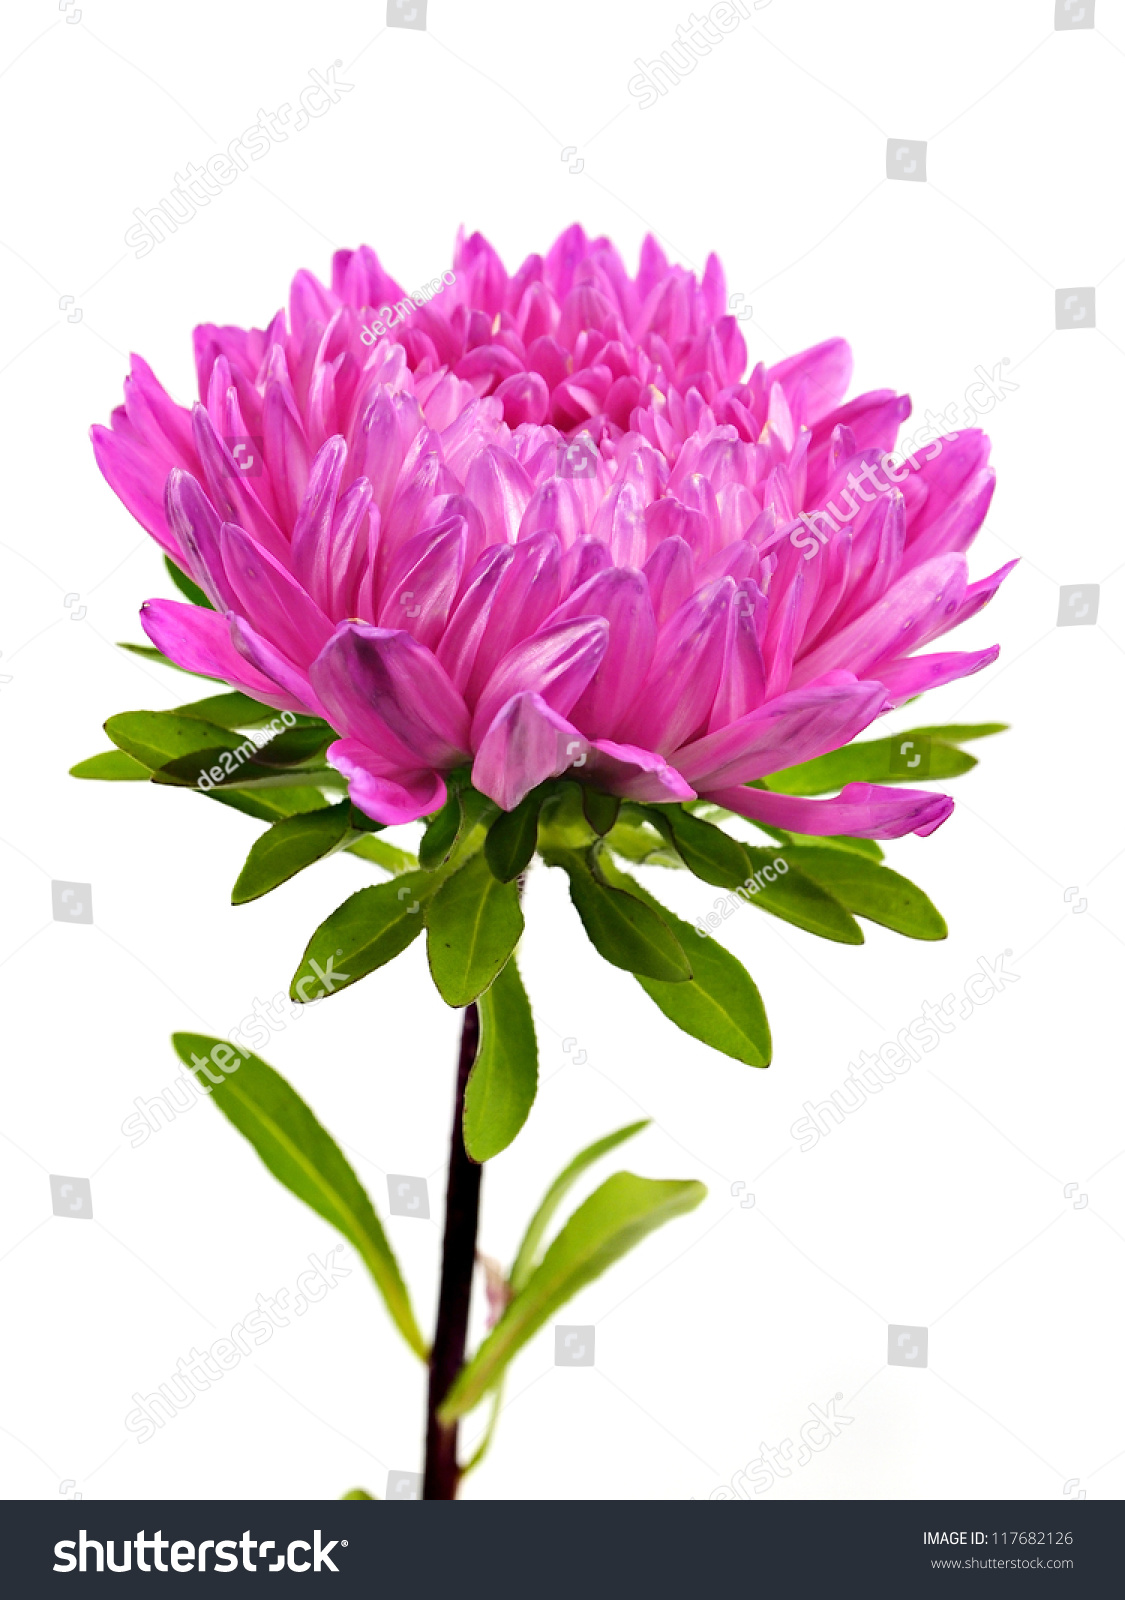 pink aster flower on white background stock photo, Beautiful flower